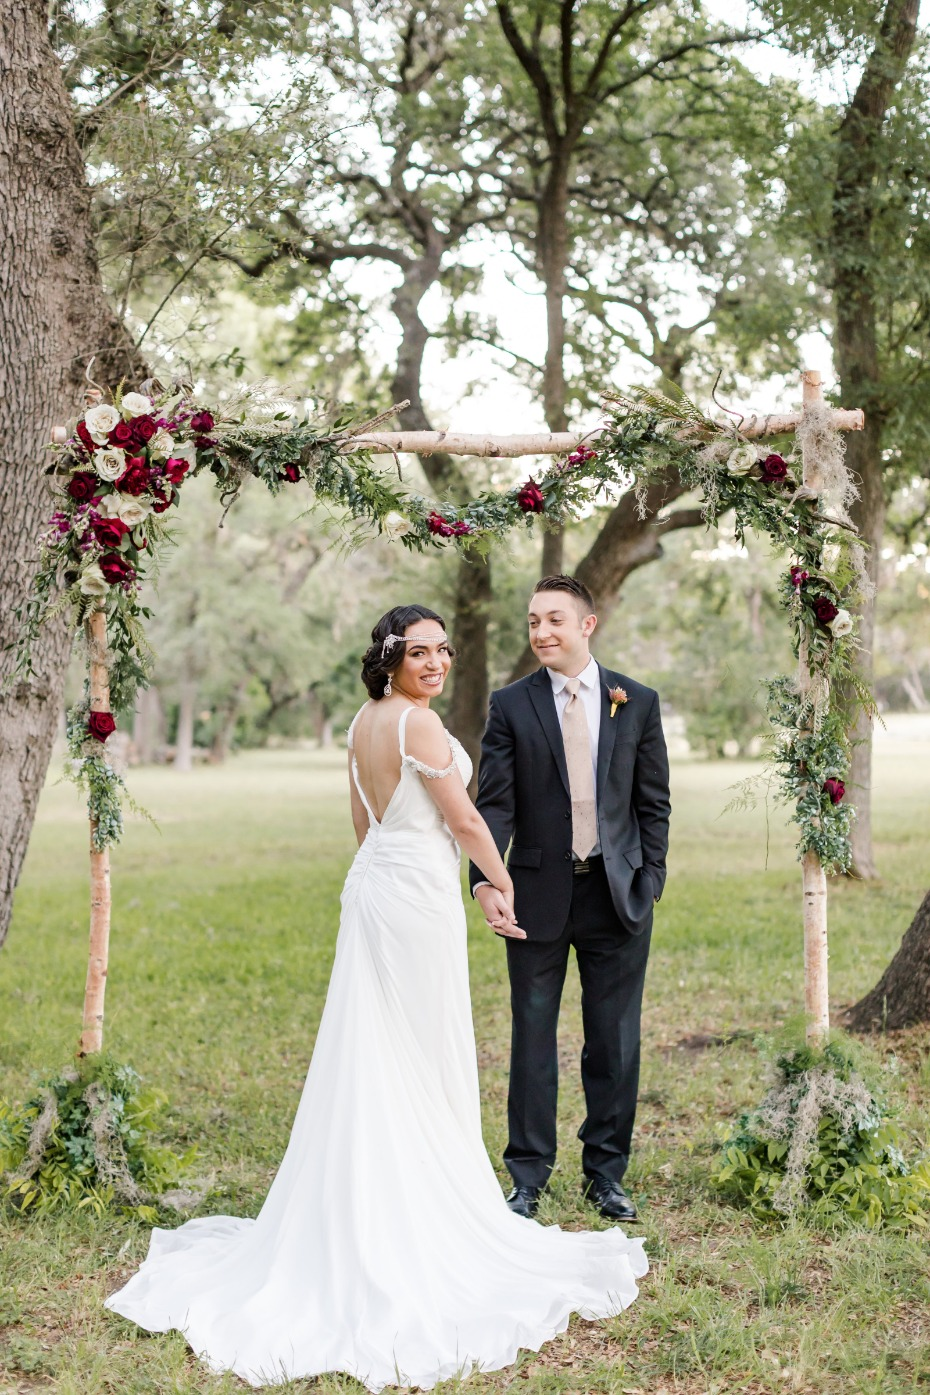 boho chic Star Wars wedding ceremony